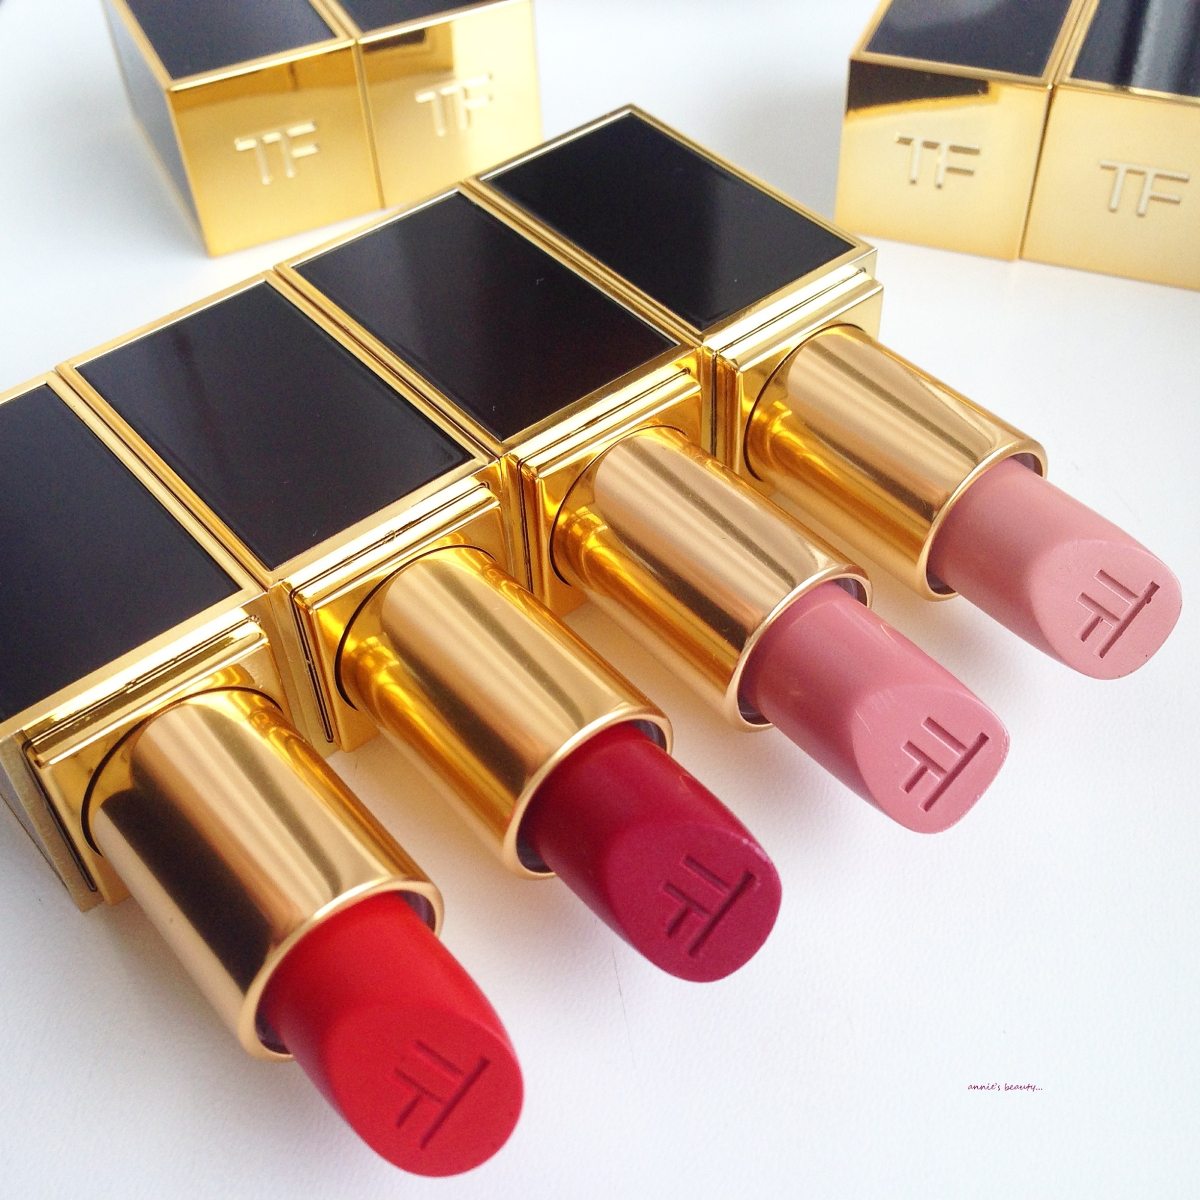 TOM FORD Lipstick #11 CRIMSON NOIR - A more wearable red for your festive nights!